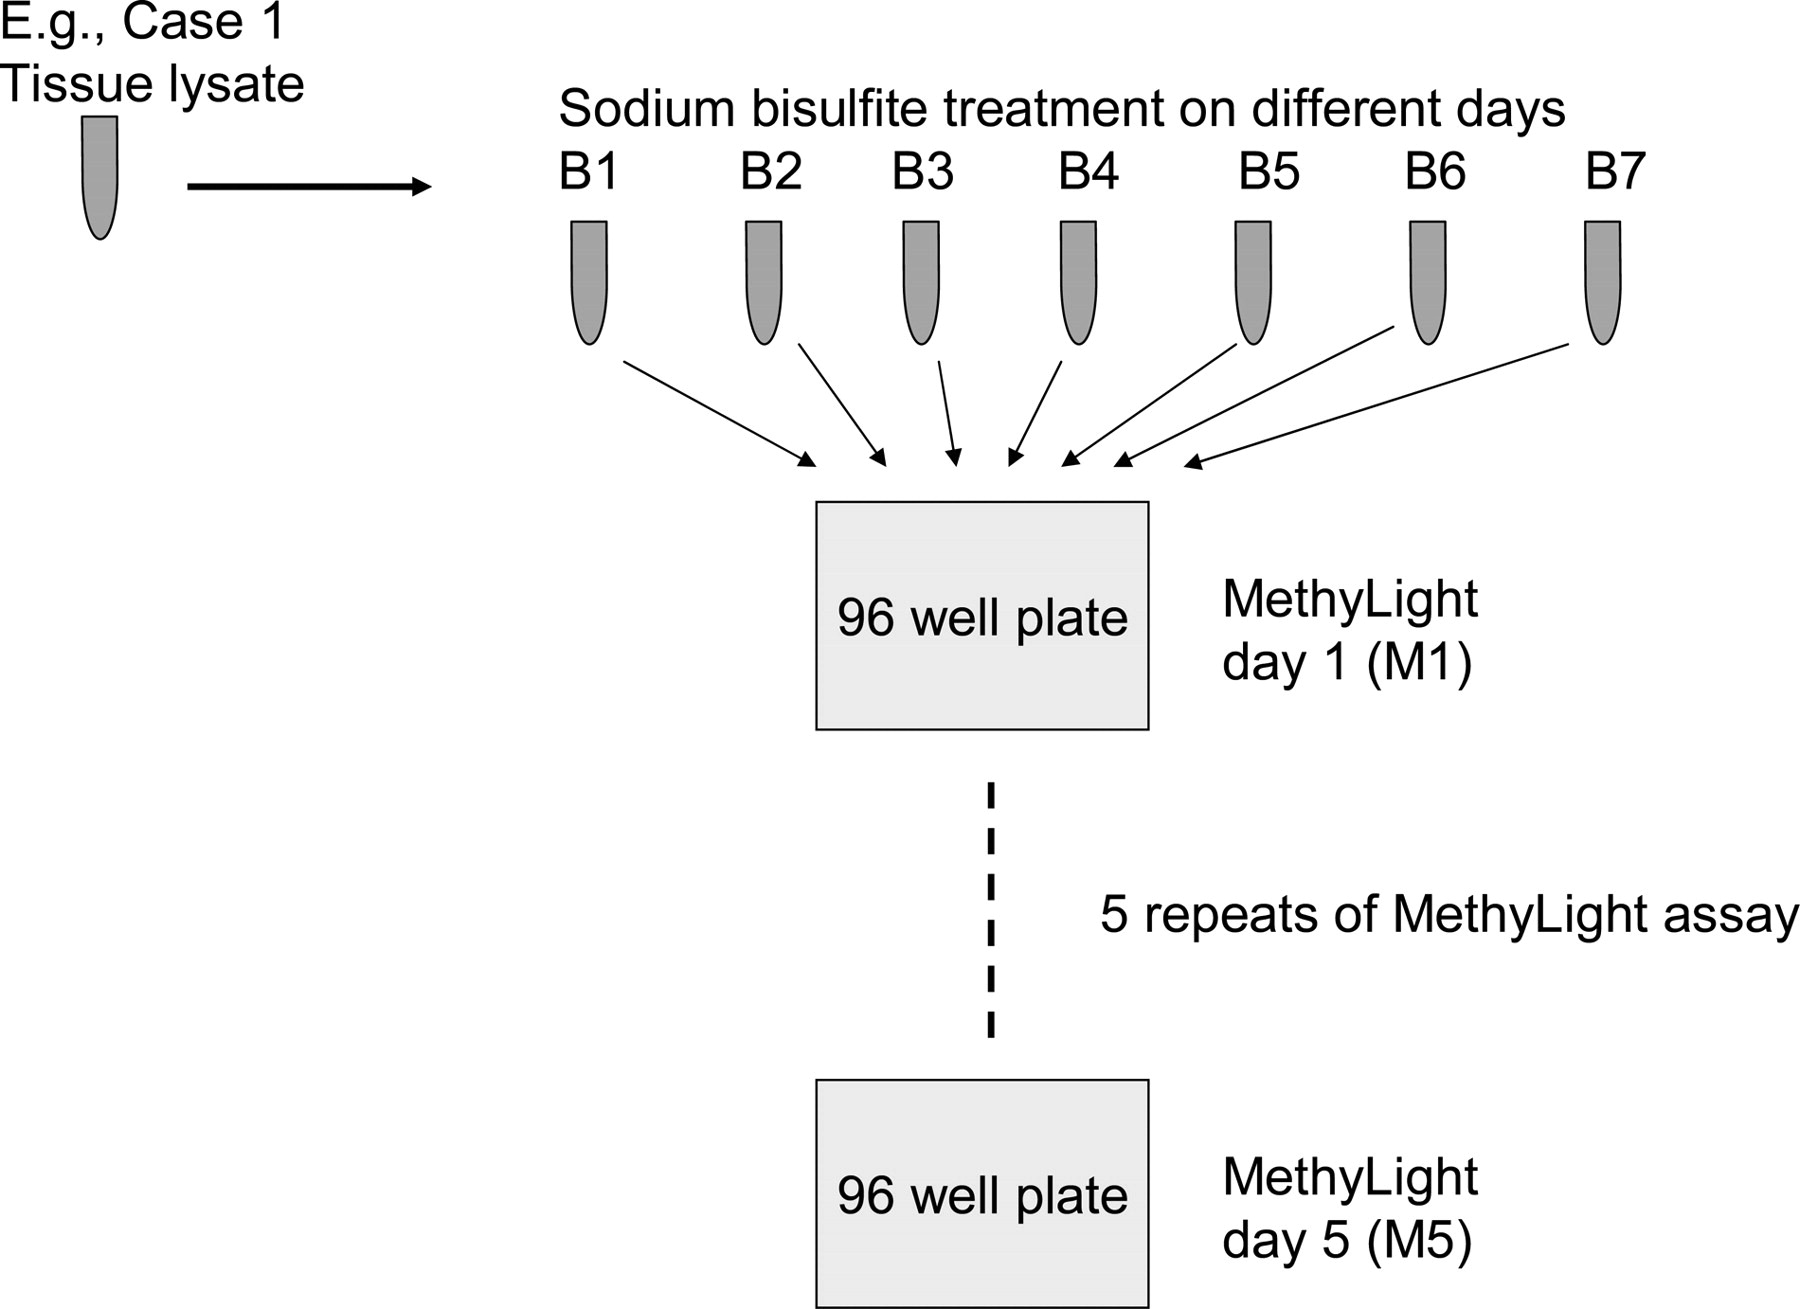 Precision And Performance Characteristics Of Bisulfite Conversion And Real Time Pcr Methylight